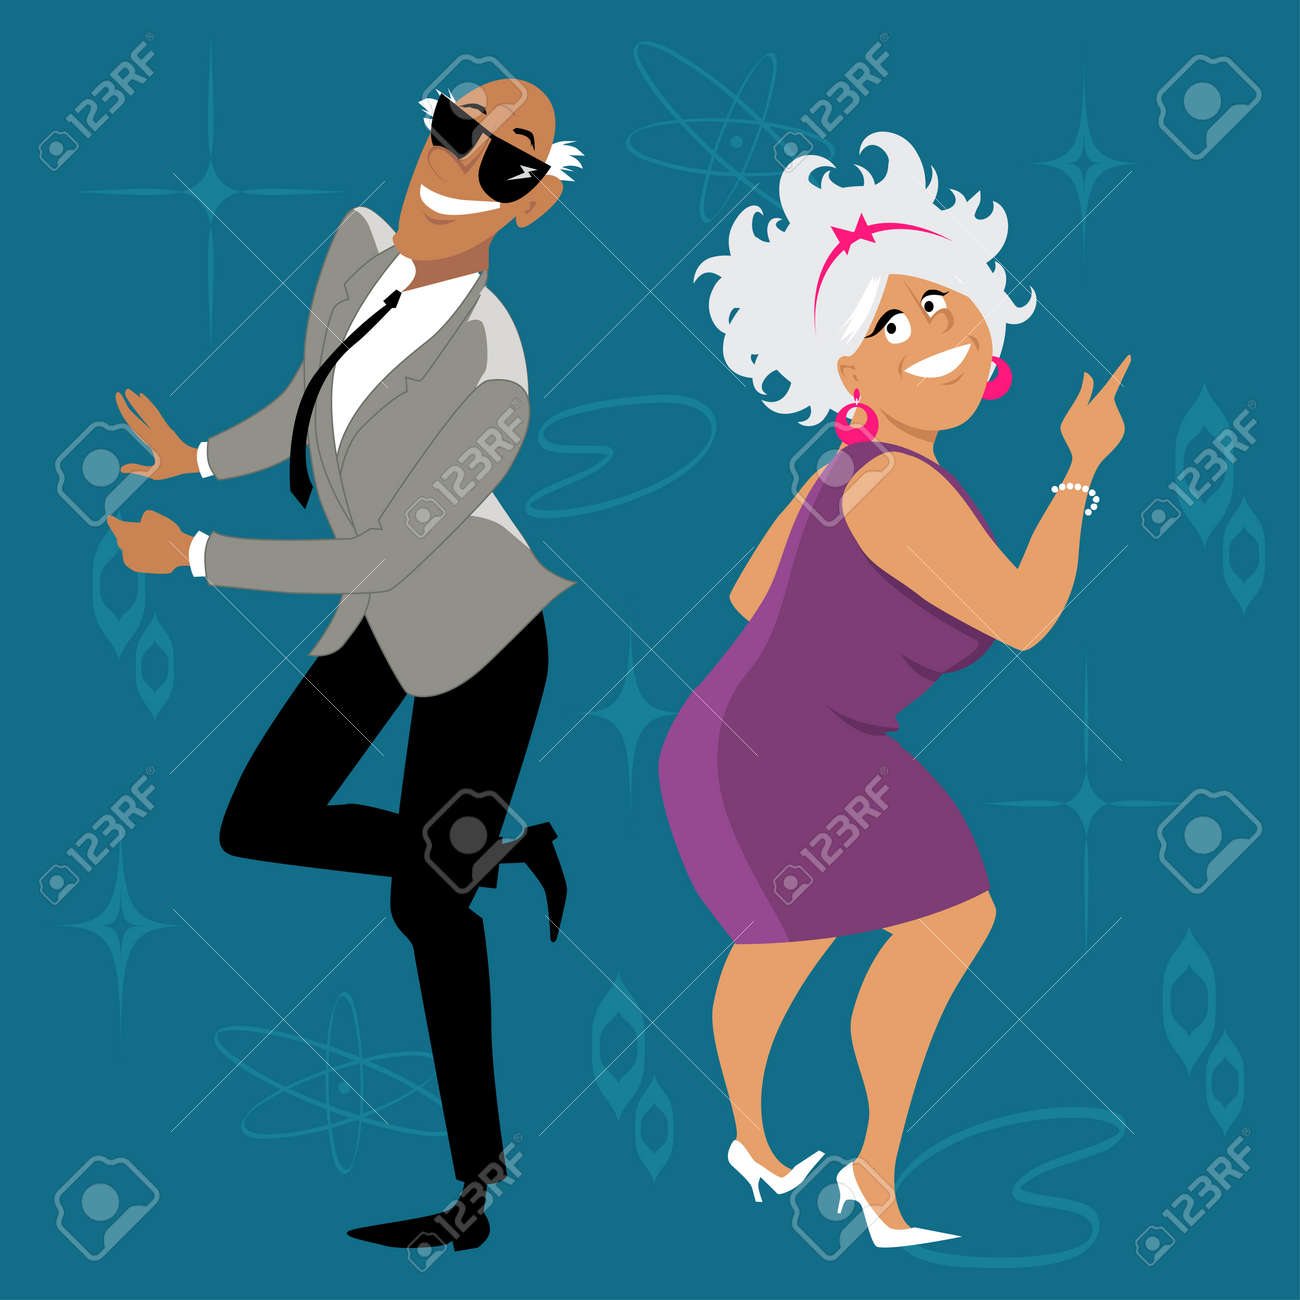 Mature couple dressed in 1960th fashion dancing the Twist, EPS 8 vector illustration - 84061983